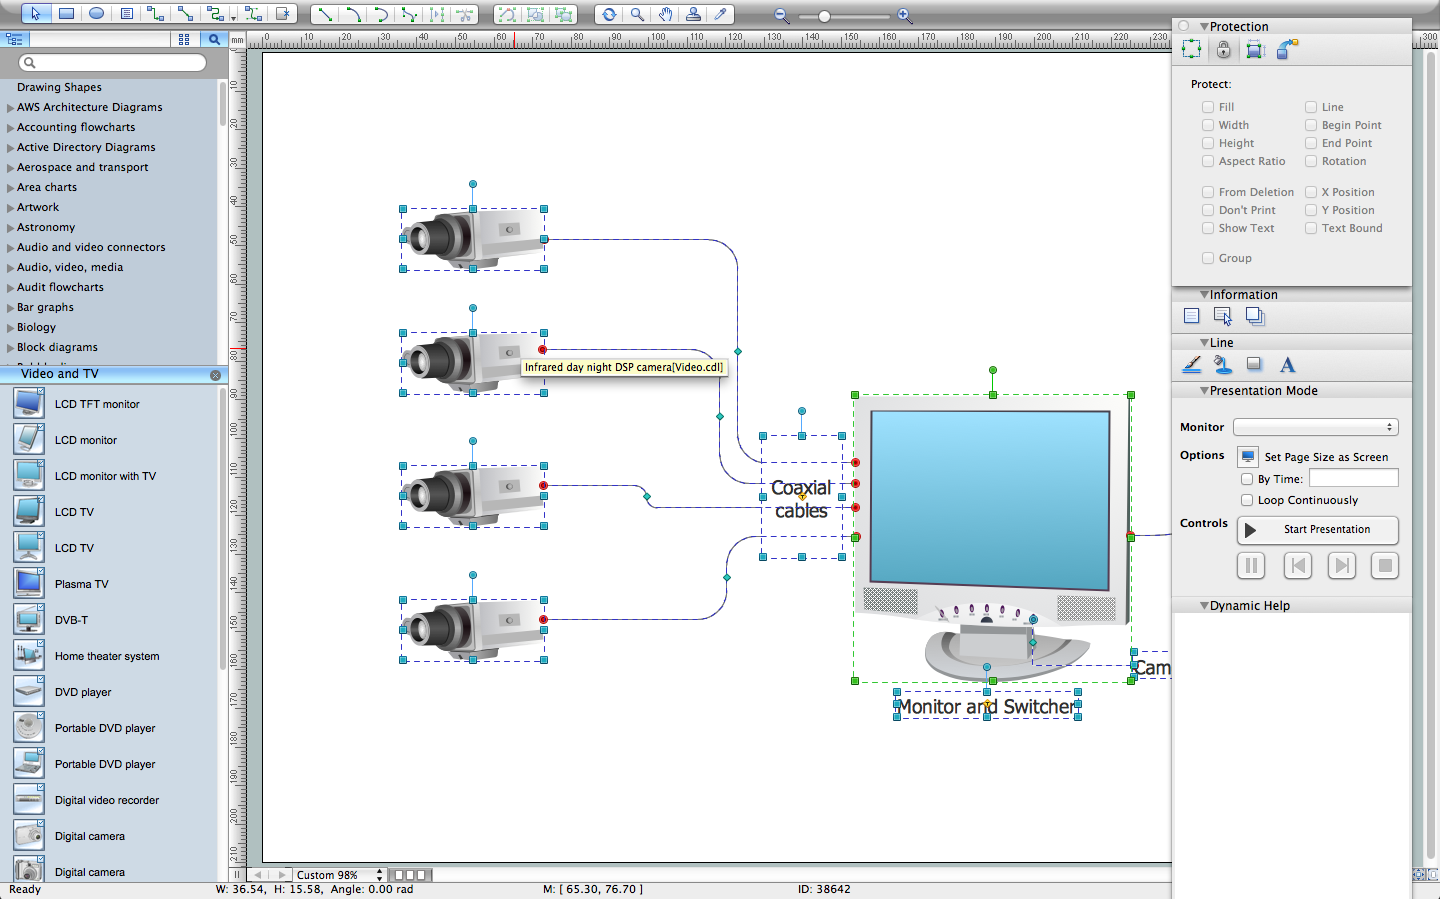 cctv network diagram software - It Diagram Software